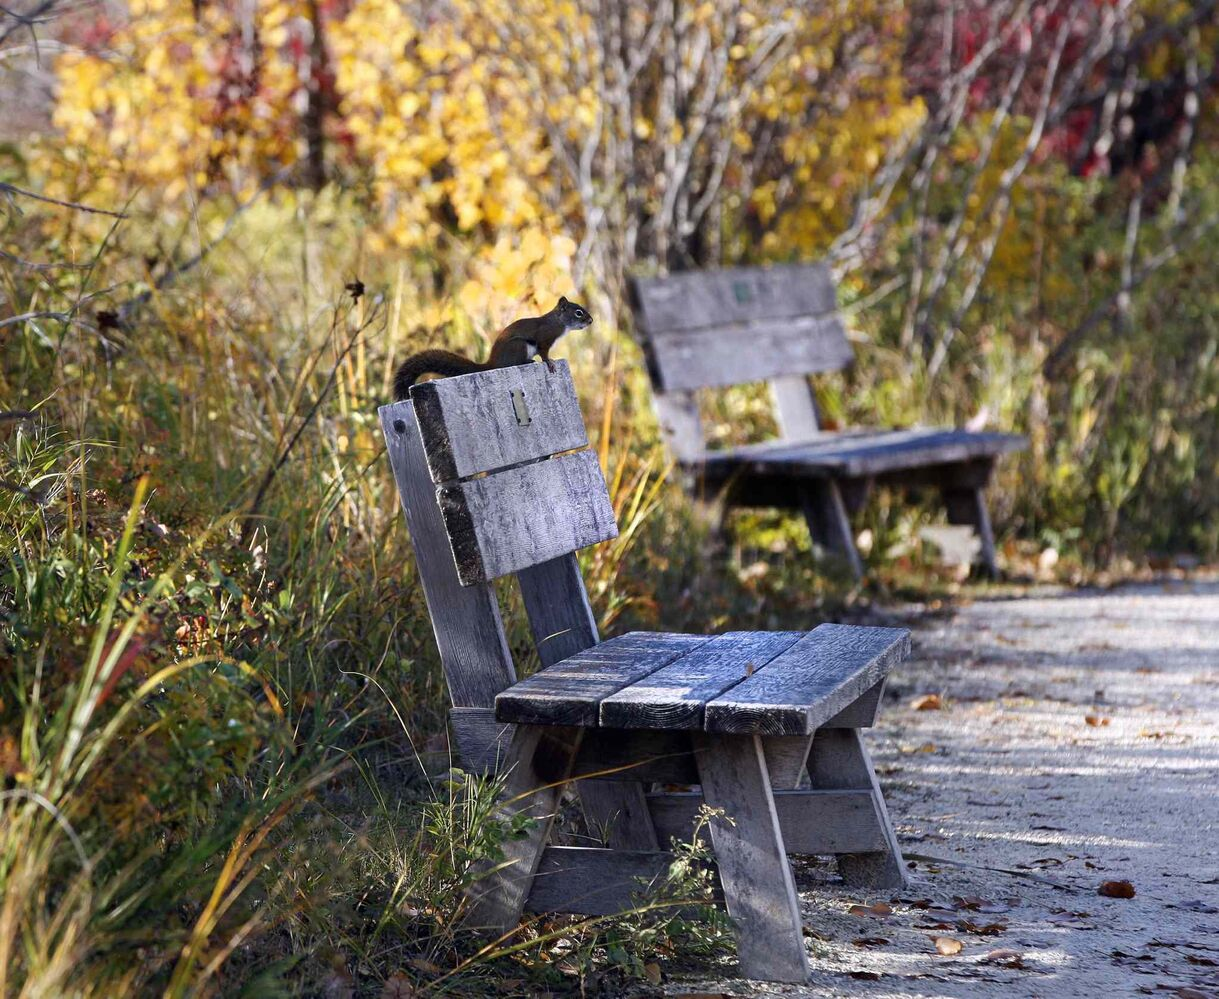 Benches provide spots for quiet contemplation. (KEN GIGLIOTTI / WINNIPEG FREE PRESS)